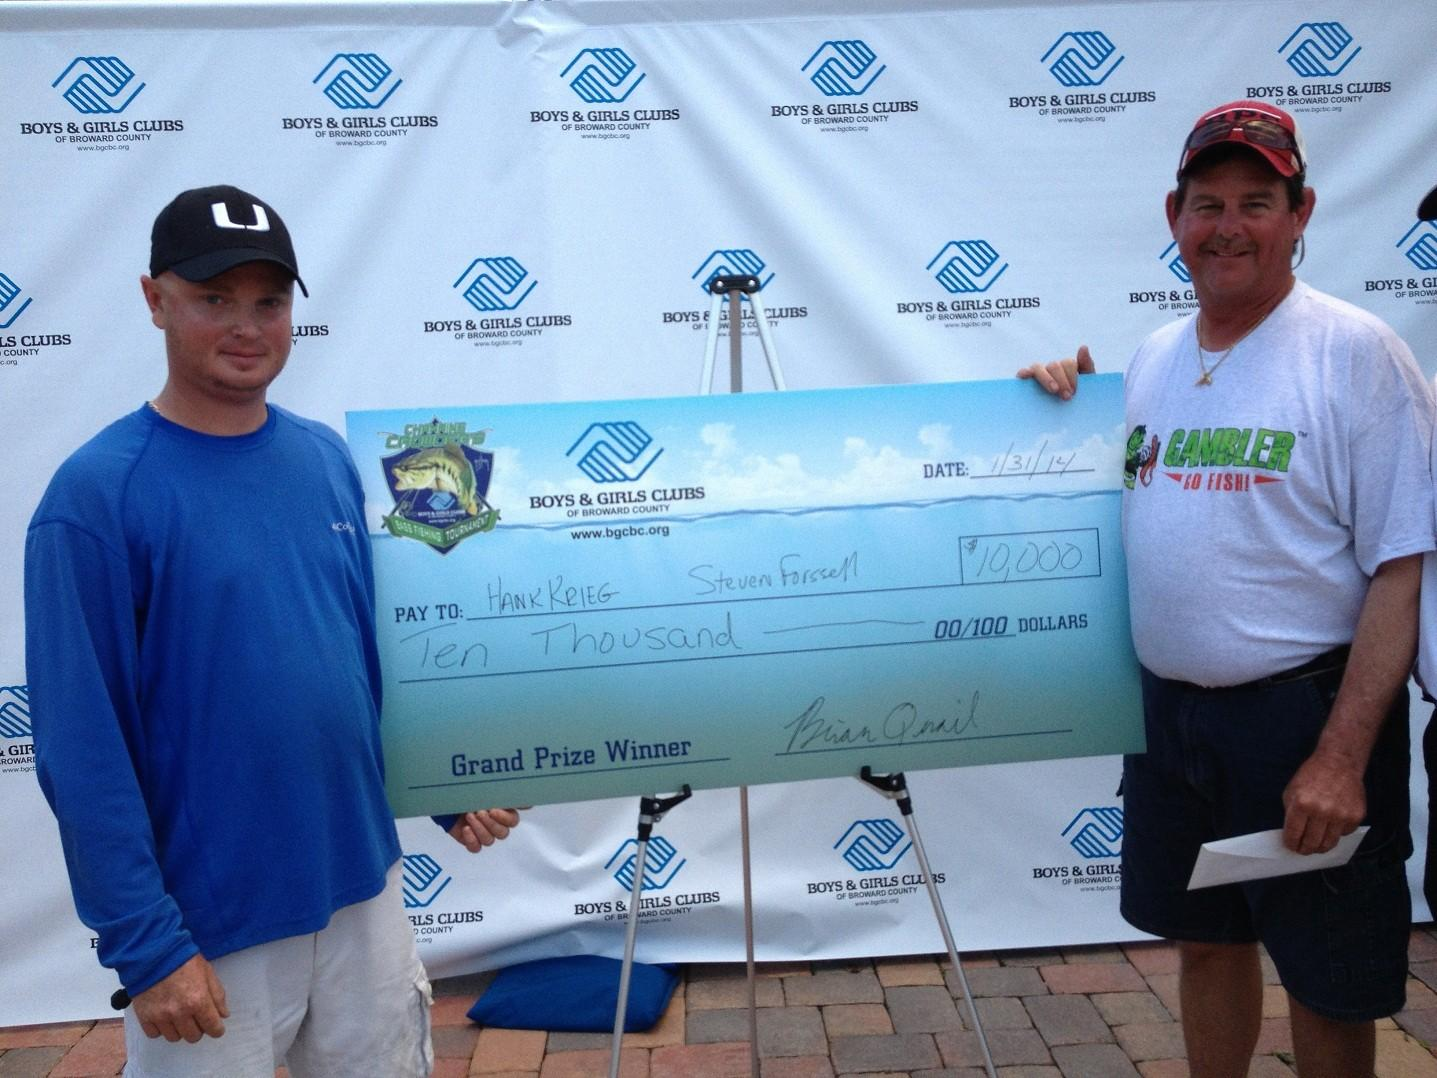 Steven Forssell, left, and Hank Krieg with their $10,000 check for winning the Channing Crowder's Bass Fishing Tournament.